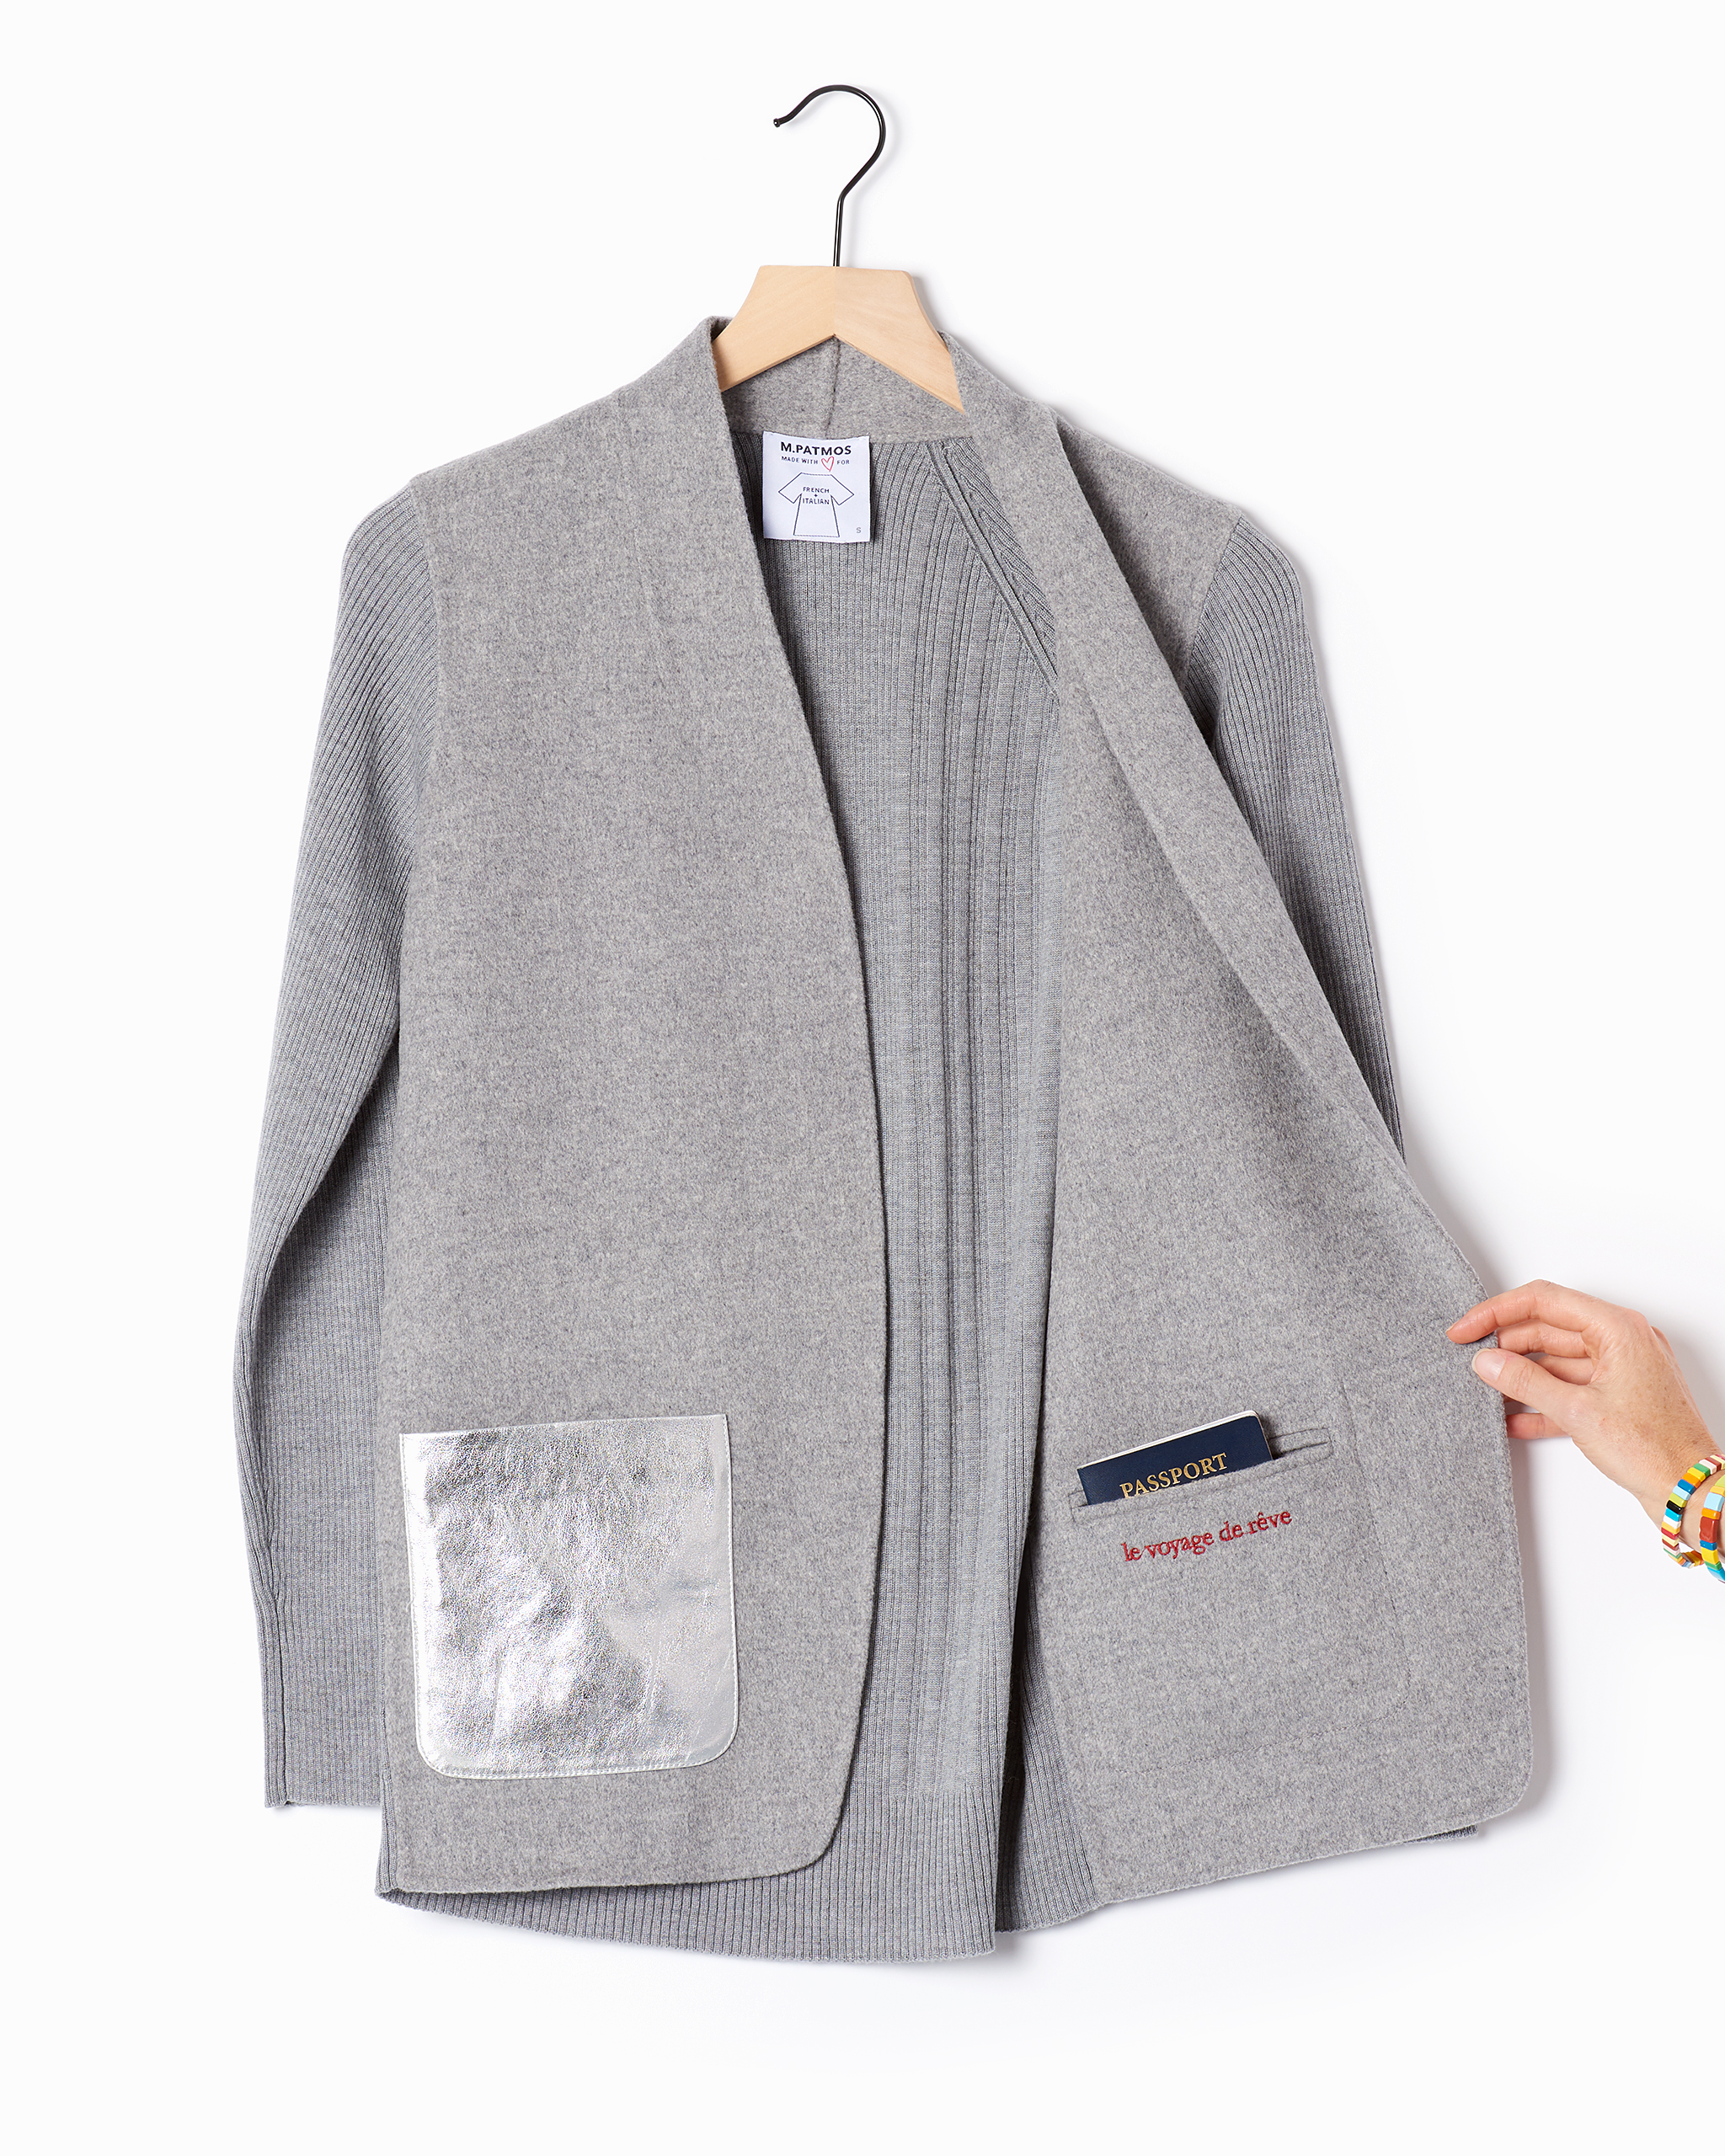 French_Italian_M_Patmos_Passport_Blazer_Light_Heather_Grey_Silver_03.jpg